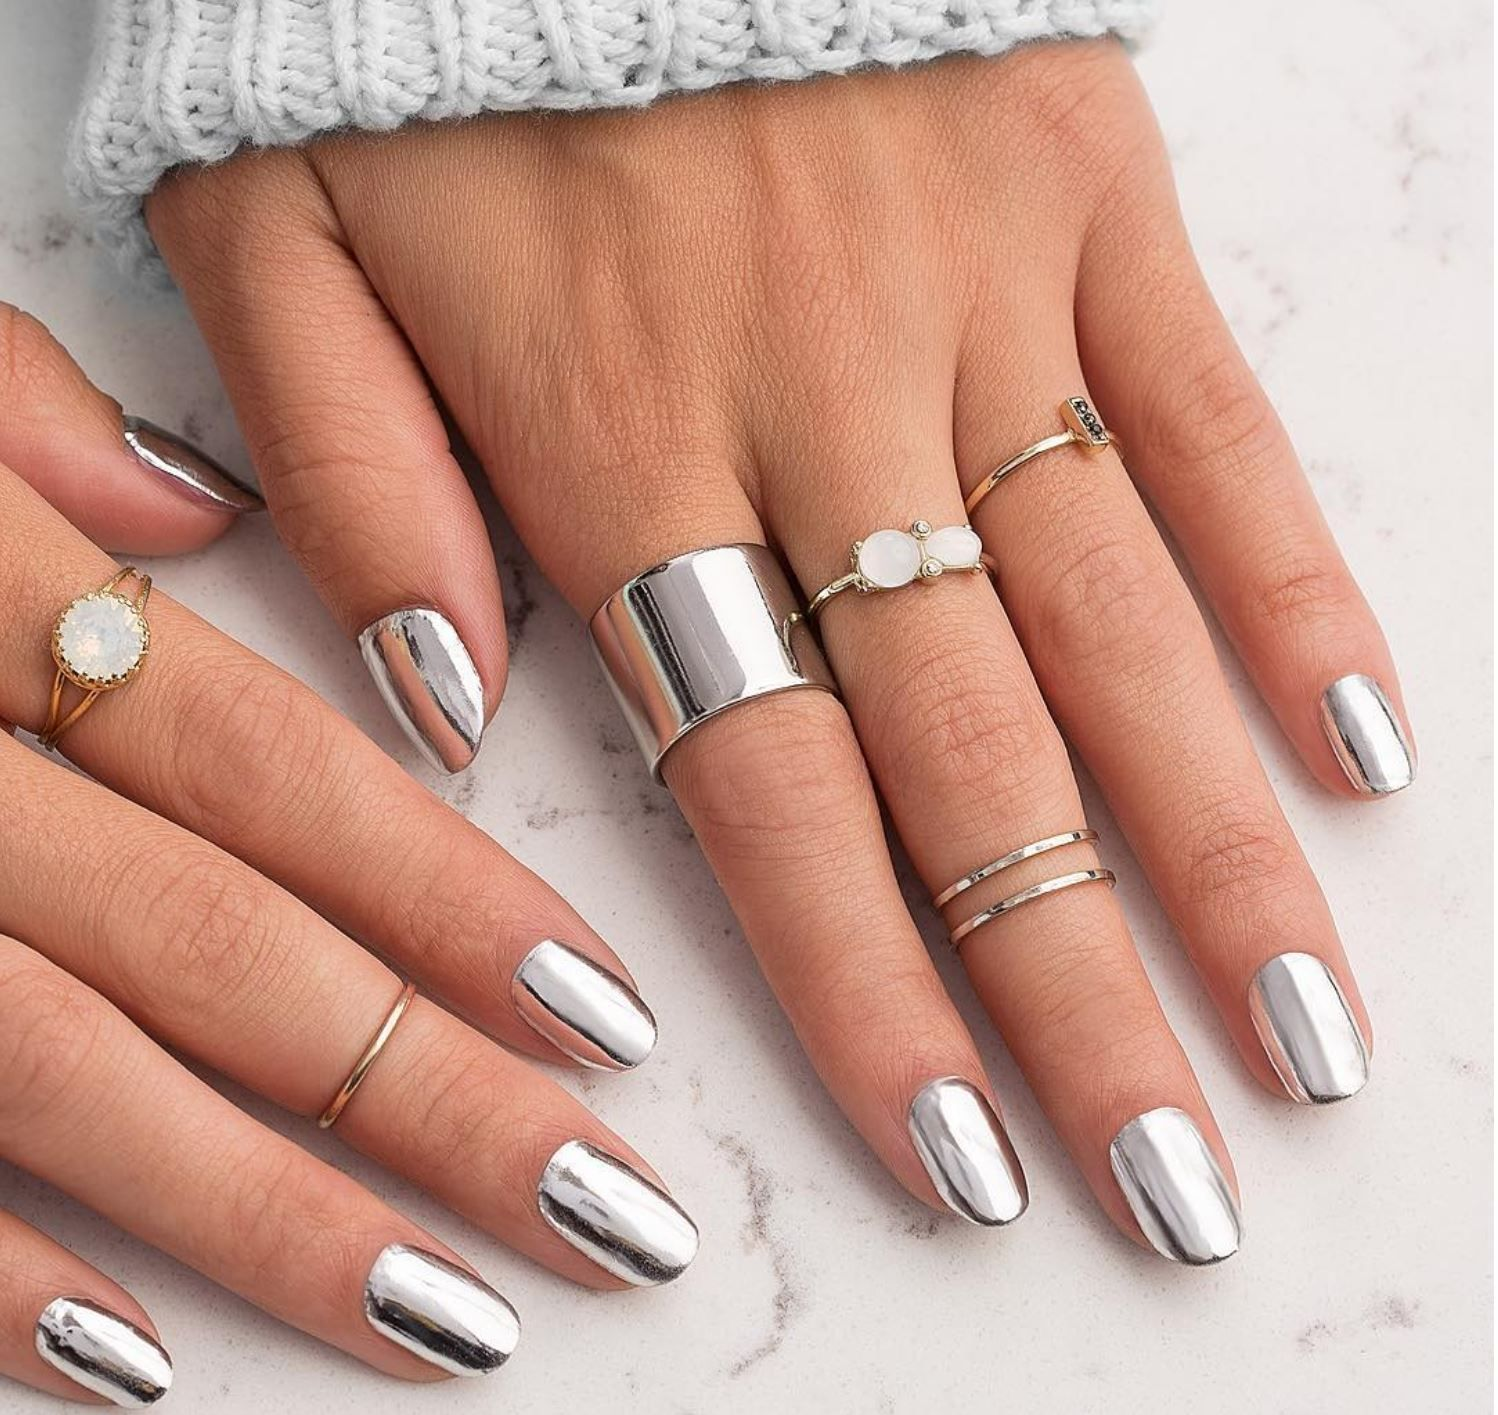 2018 manicure trends for your wedding